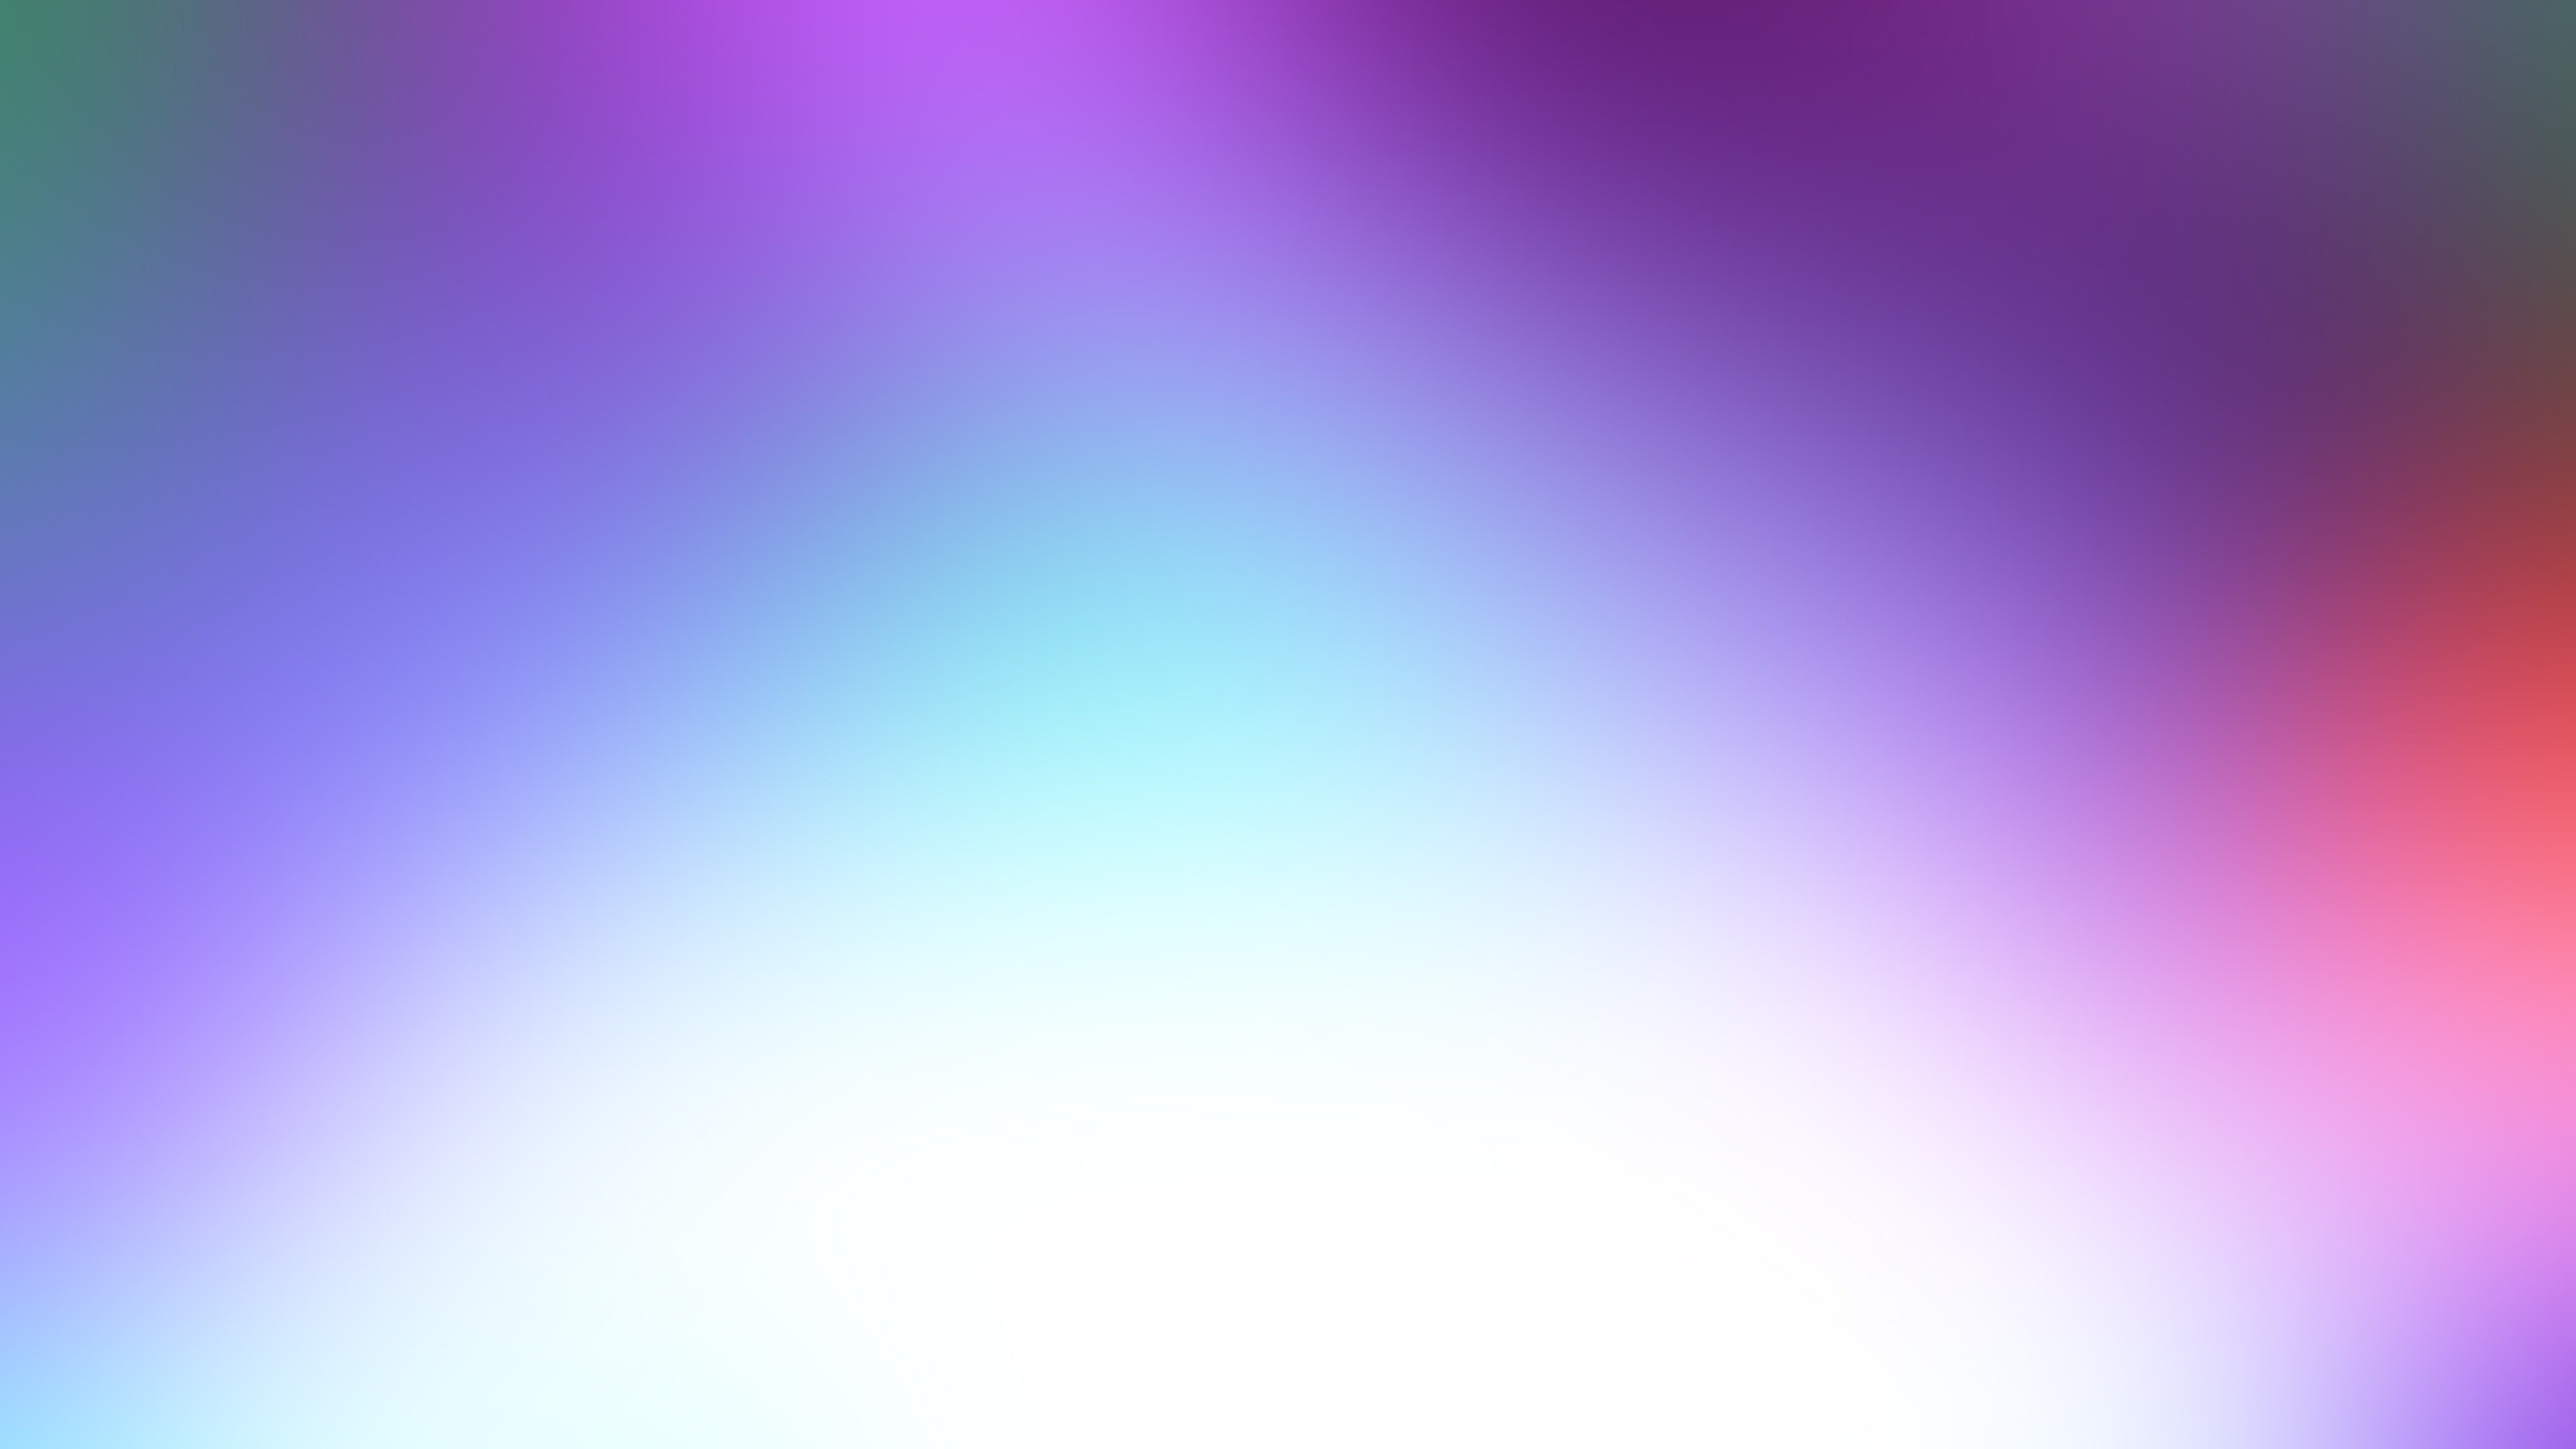 pink purple and blue backgrounds 183��